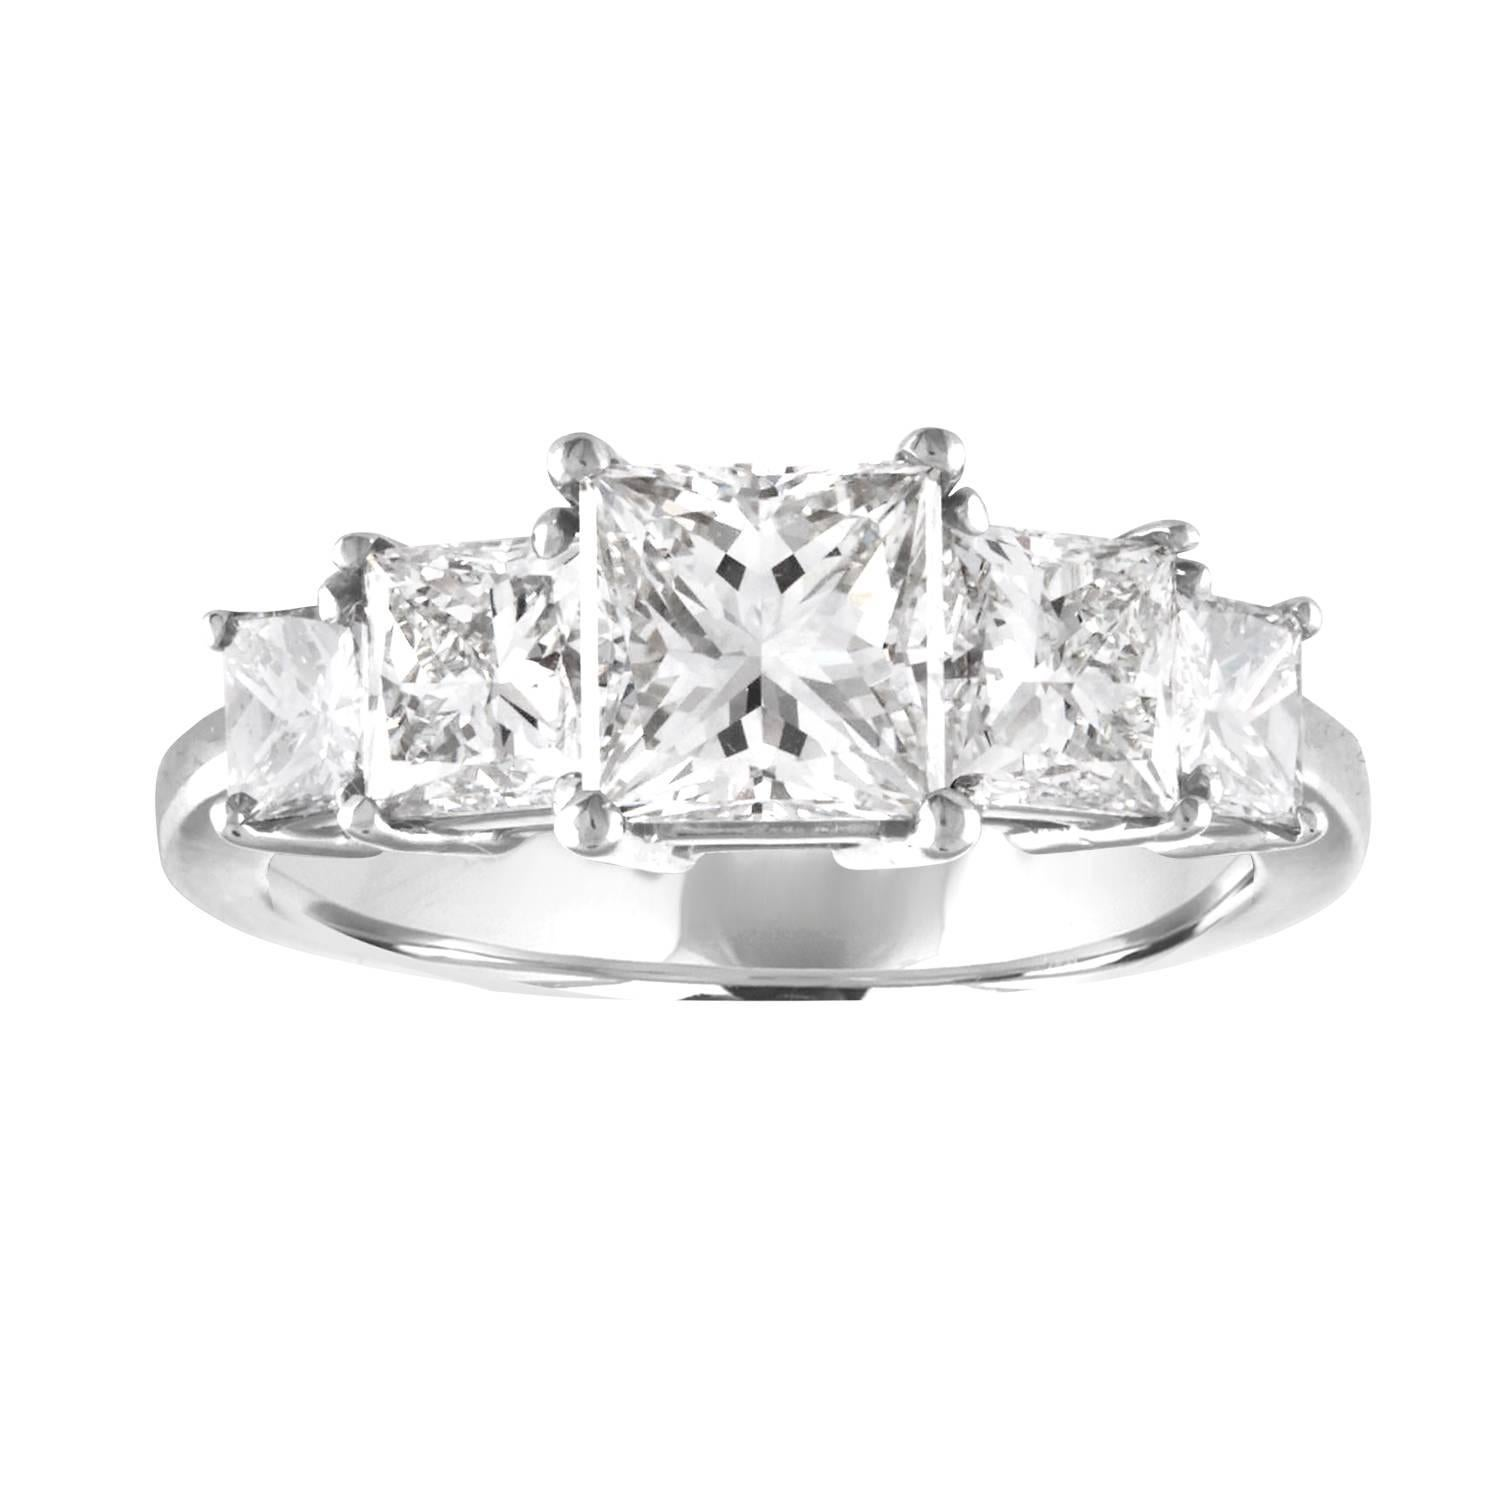 GIA Certified 2.57 Carat Princess Cut Diamond Five-Stone Platinum Ring